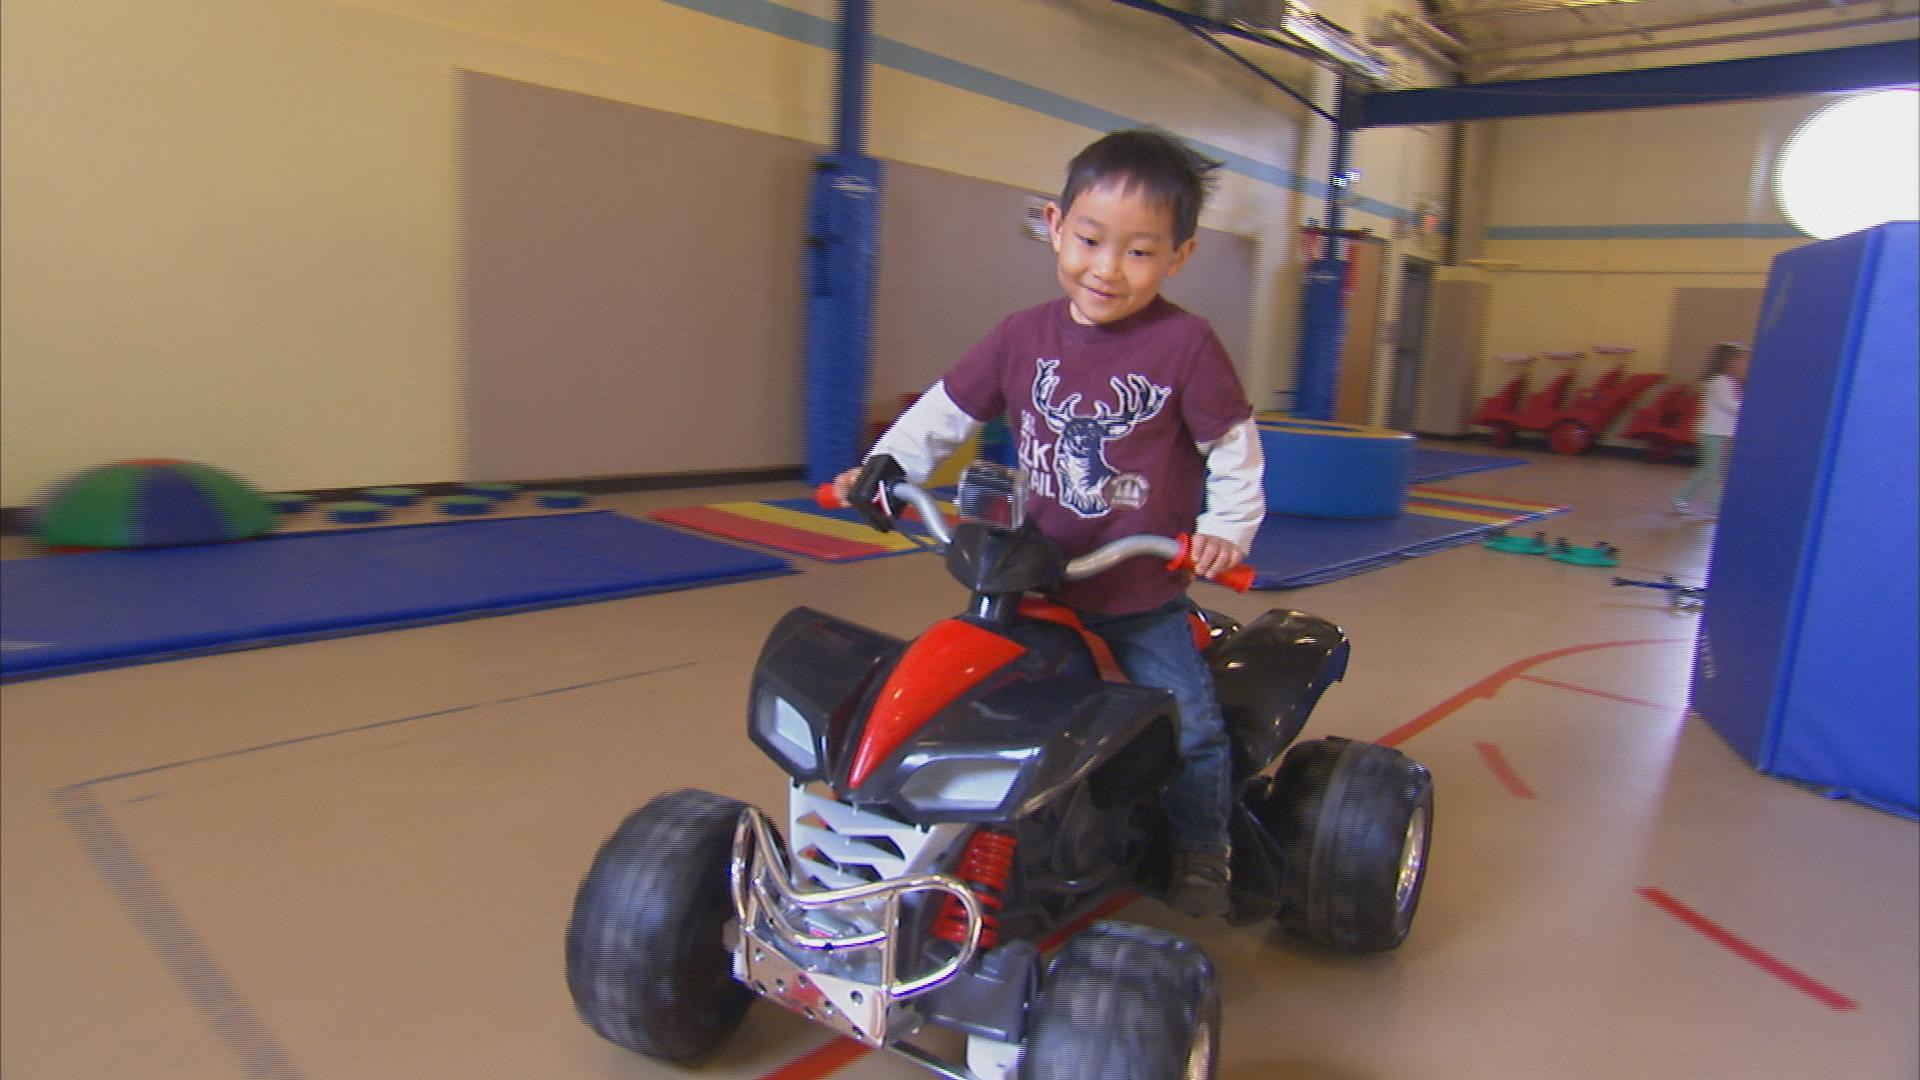 A program at the University of Delaware creates custom cars for disabled children to help them get around — and maybe walk again.